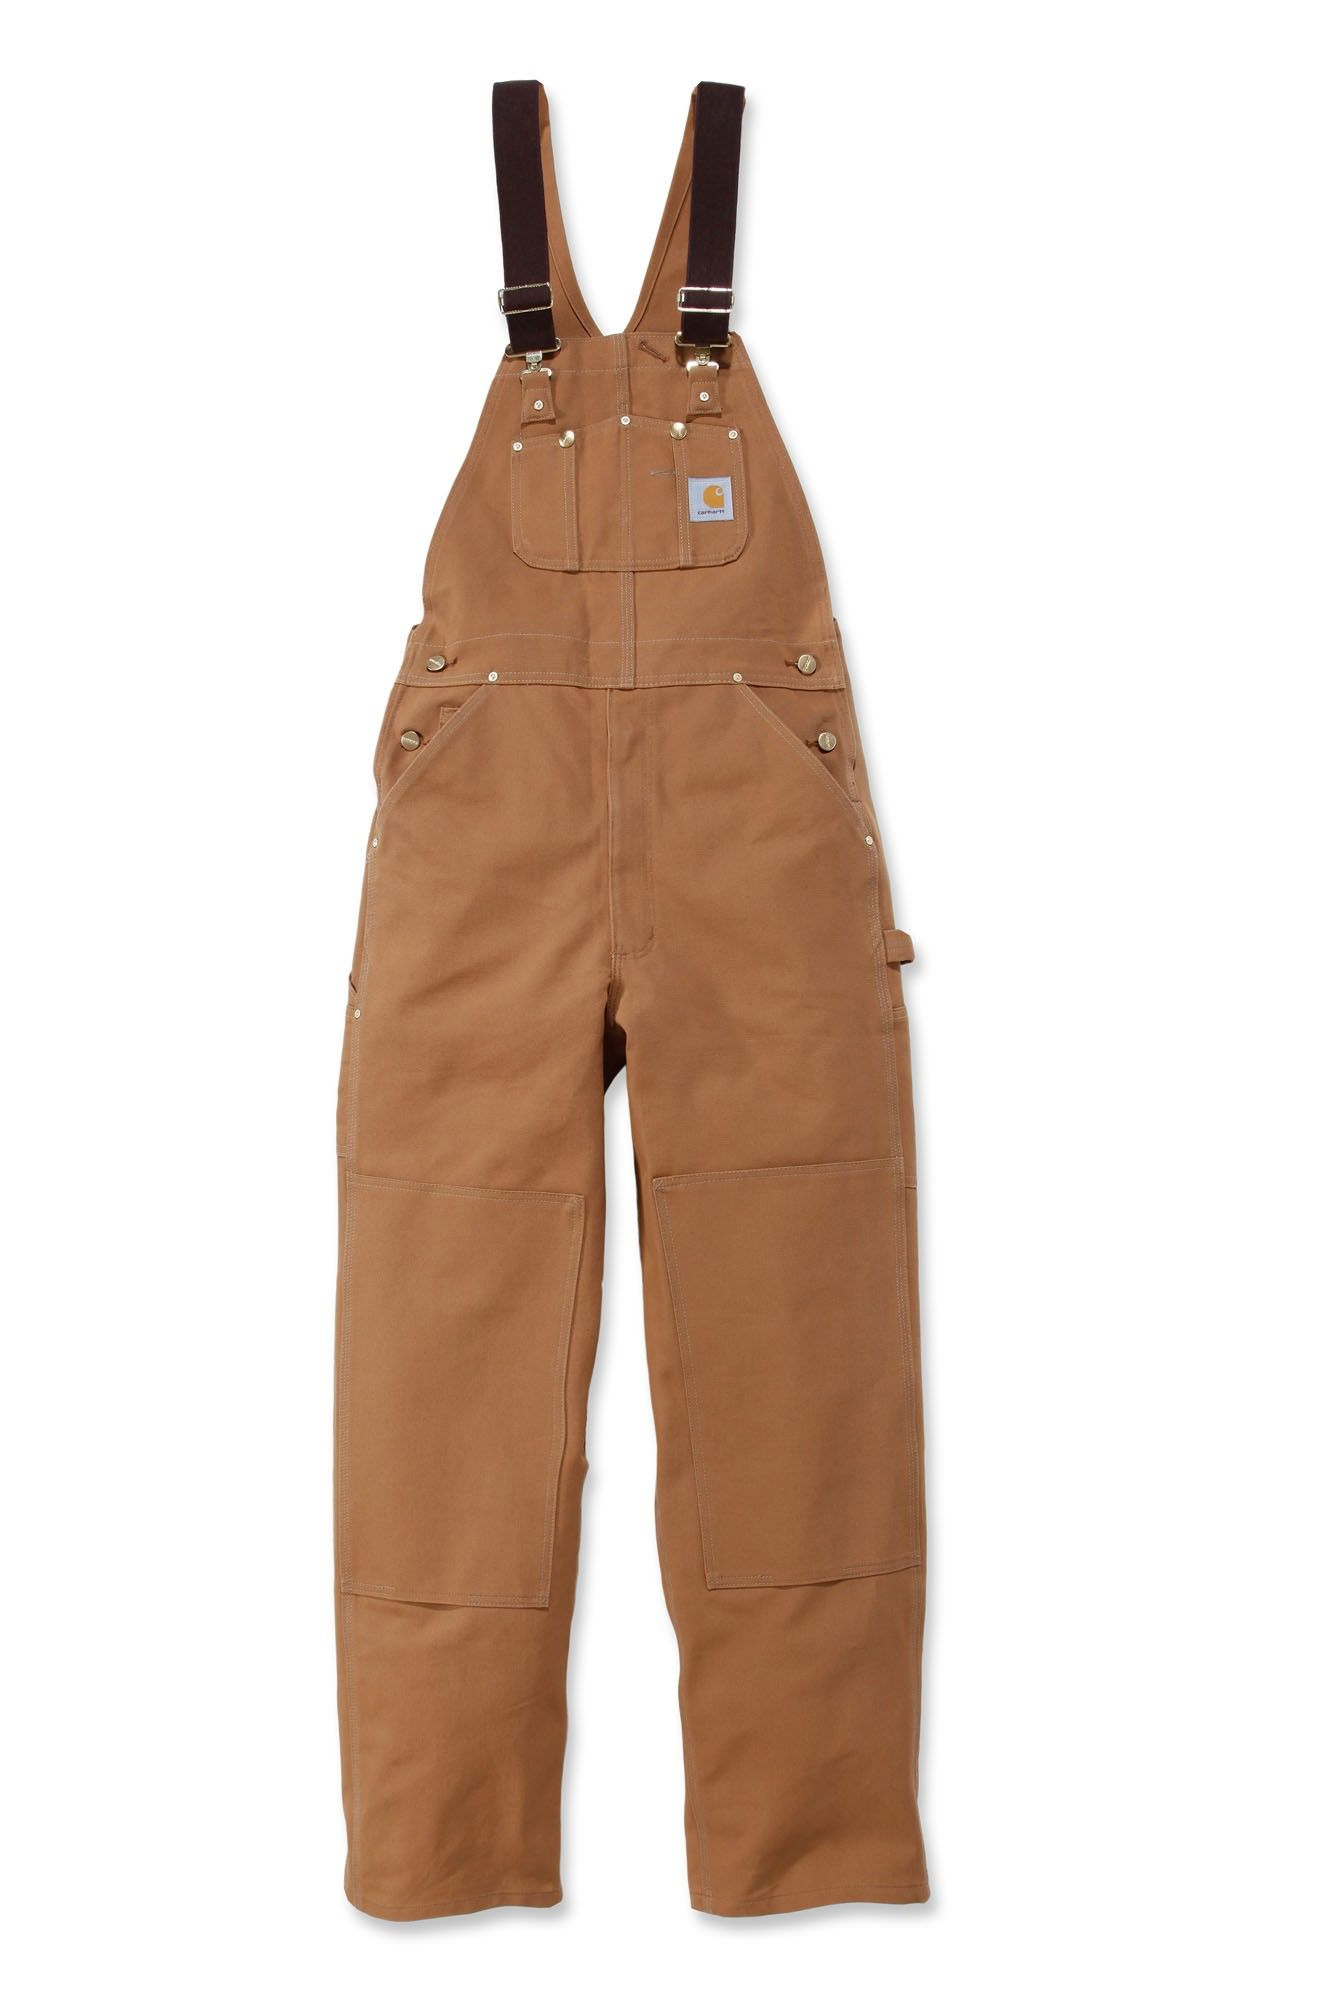 2b403af3354d6 Pin by Skyla King-Estes on Future Closet in 2019 | Carhartt overalls ...